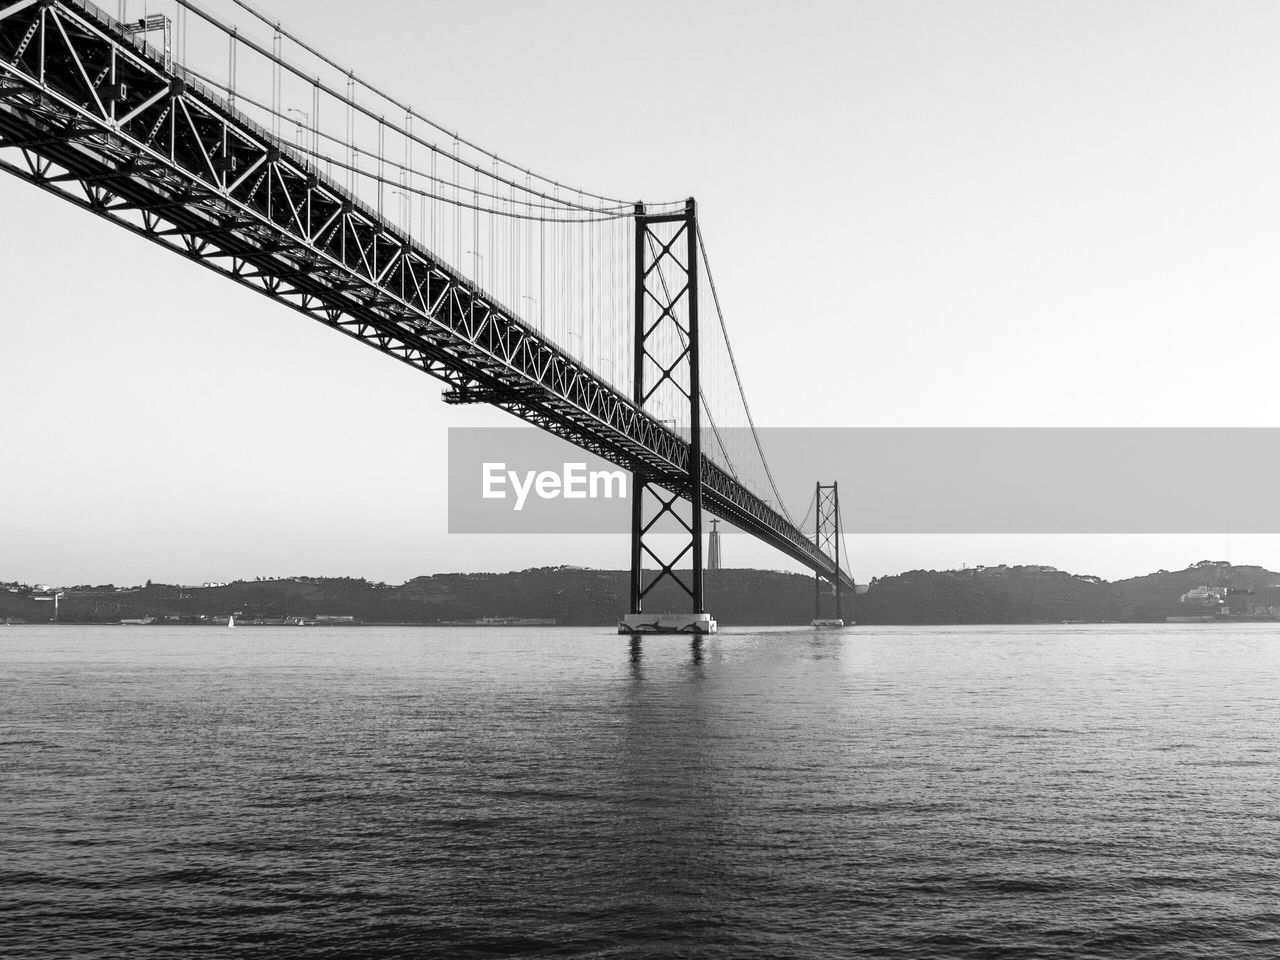 connection, bridge - man made structure, engineering, transportation, suspension bridge, architecture, built structure, no people, travel, river, water, outdoors, travel destinations, bridge, waterfront, sky, day, low angle view, nature, tranquility, clear sky, city